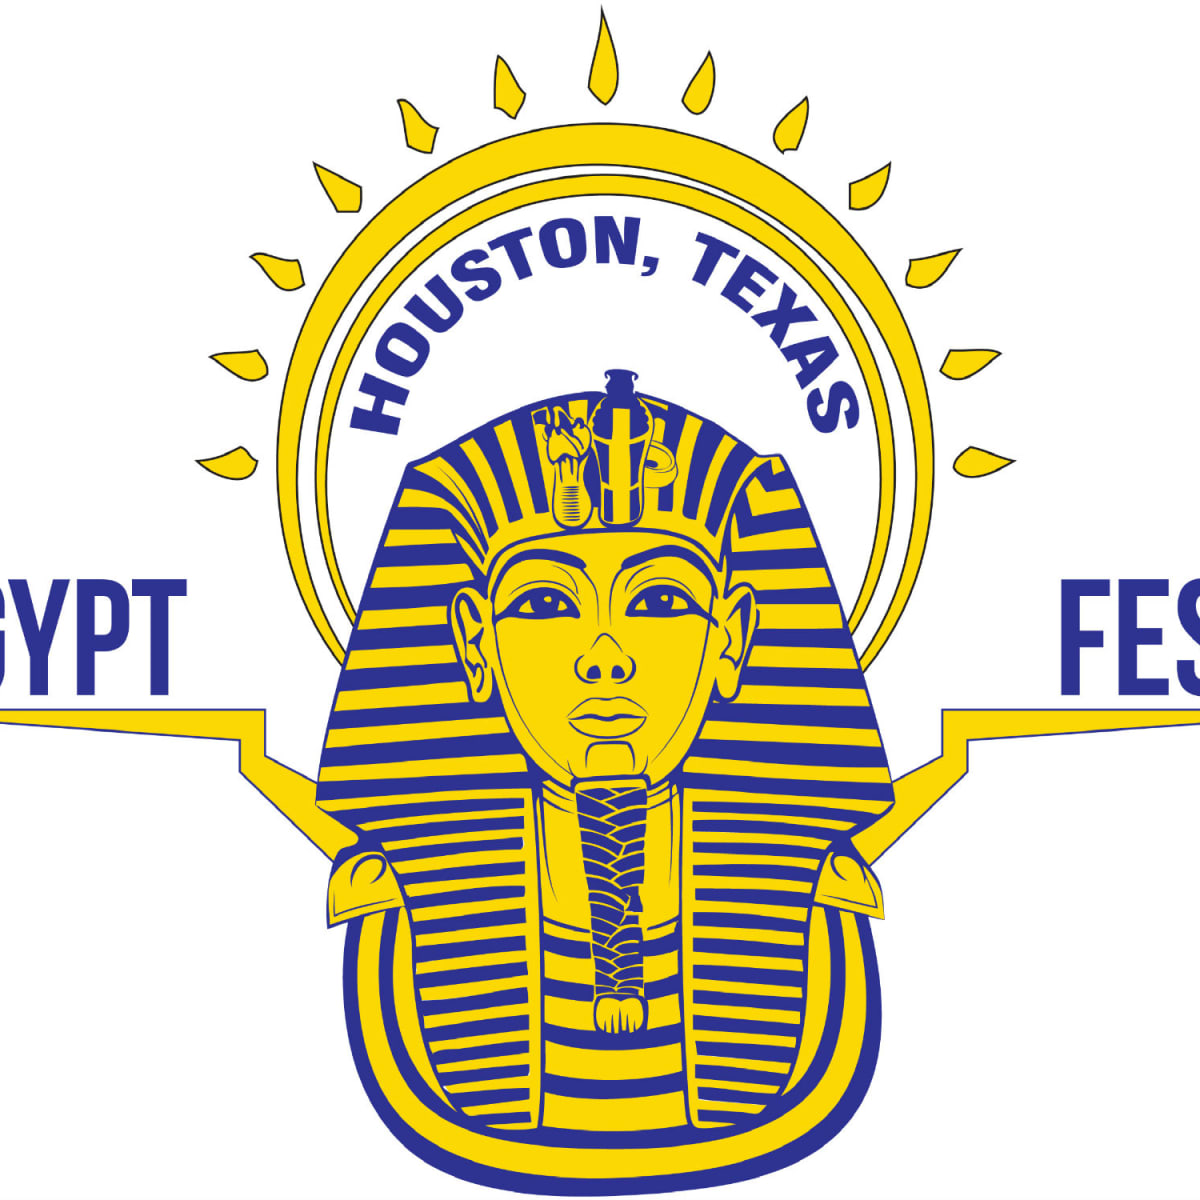 The Houston Egyptian Festival 2017